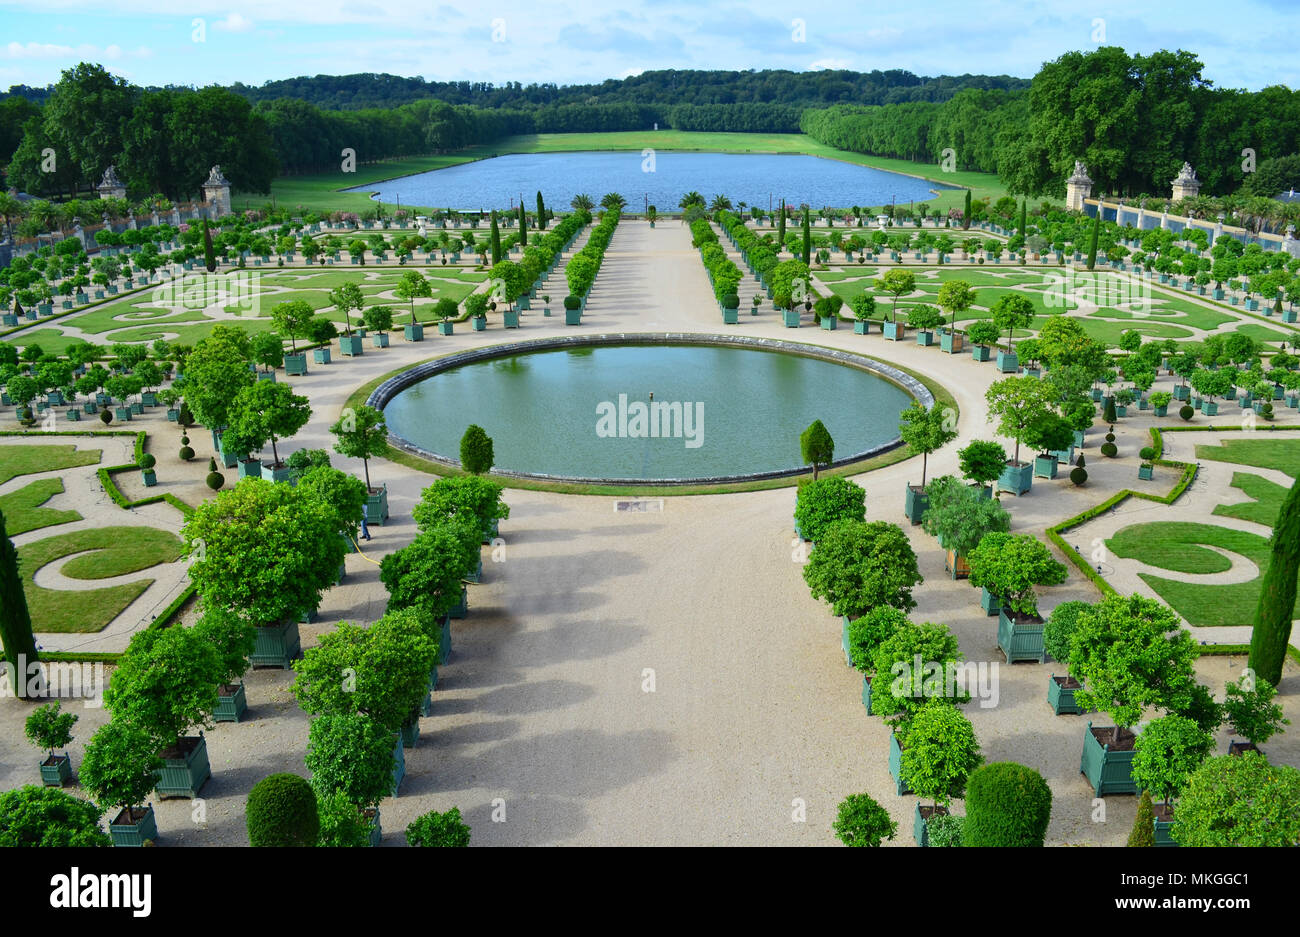 L'Orangerie in the Gardens of Versailles, France - Stock Image